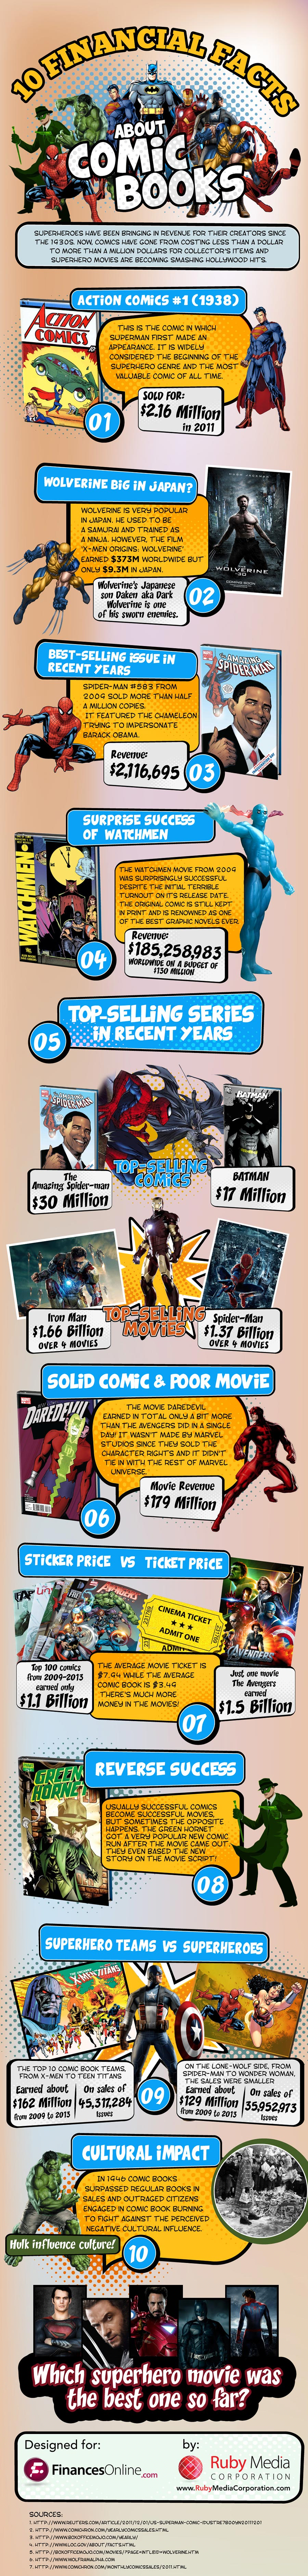 10 Financial Facts About Comic Books